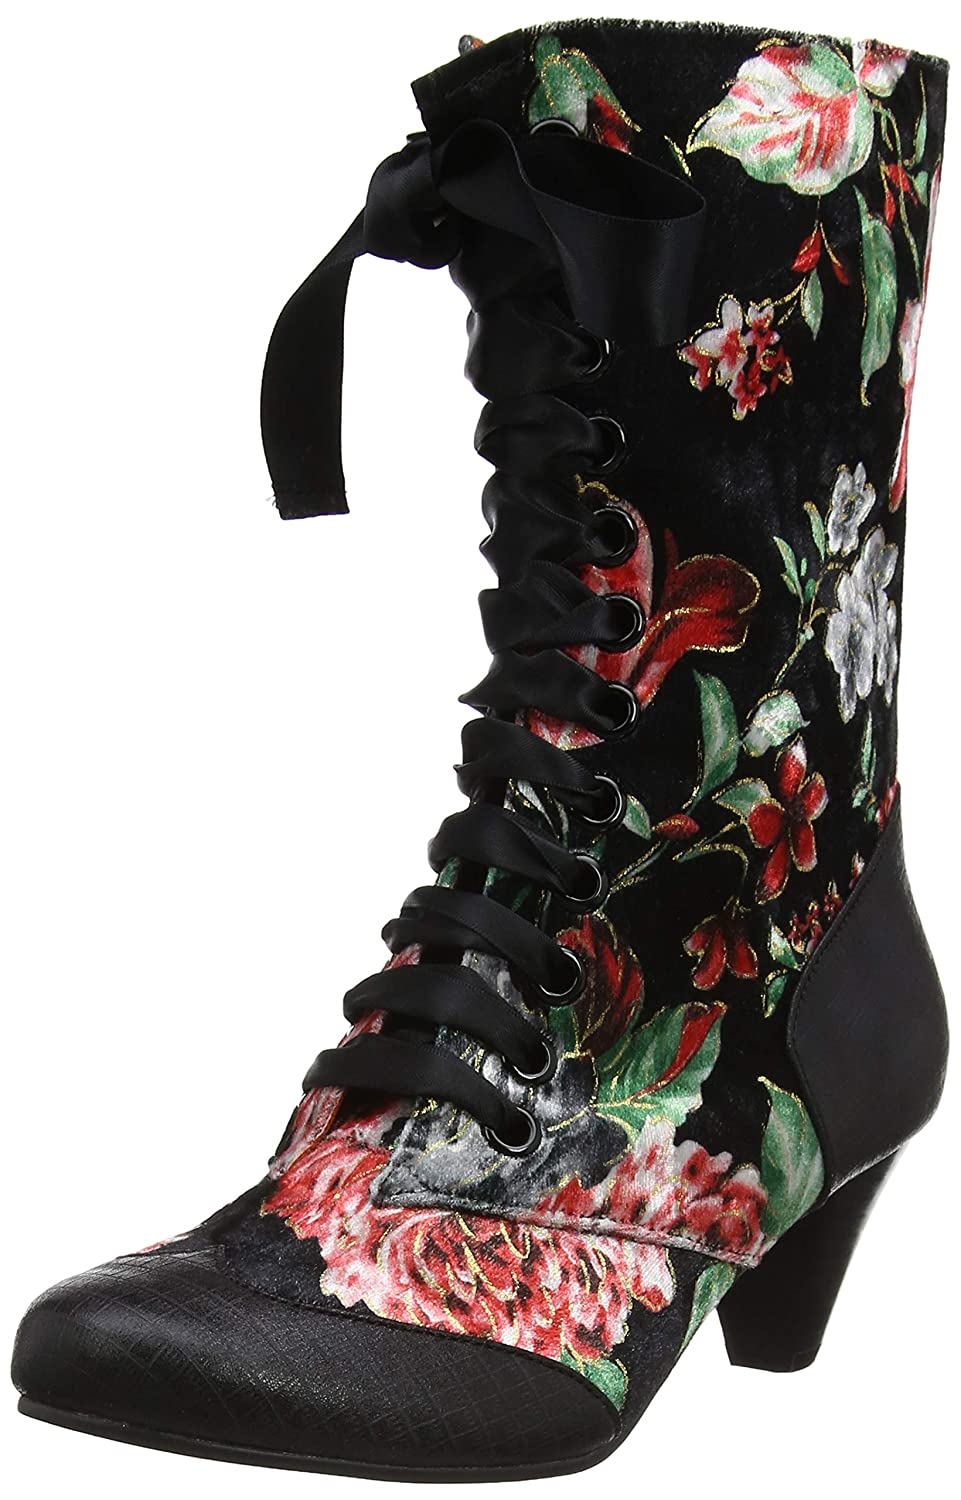 Poetic Licence by 19954 Irregular Choice Lady K) Victoria, Poetic Bottes Femme Noir (Black Multi Floral K) 9129f4f - piero.space